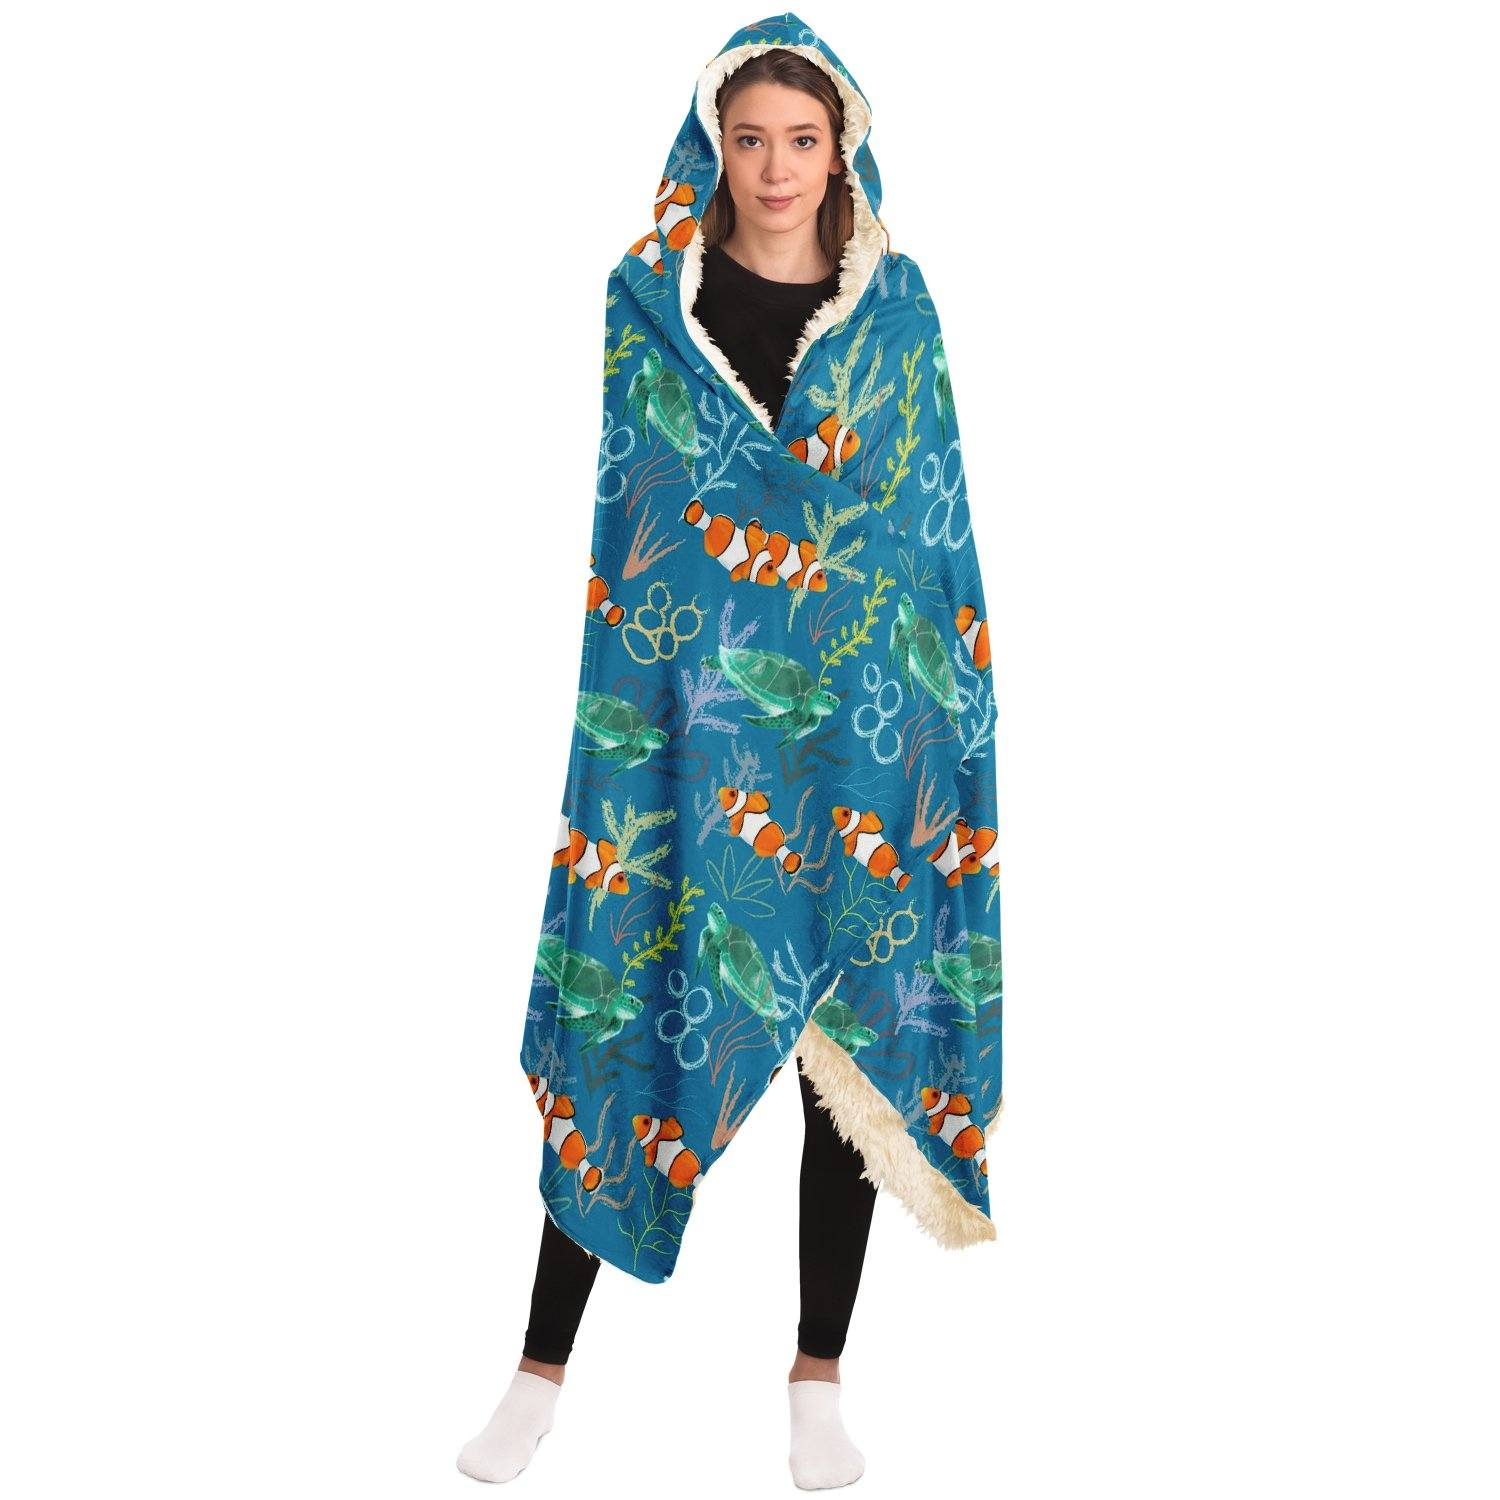 Clownfish and Turtle Hooded Blanket - Fair Dinkum Fashion